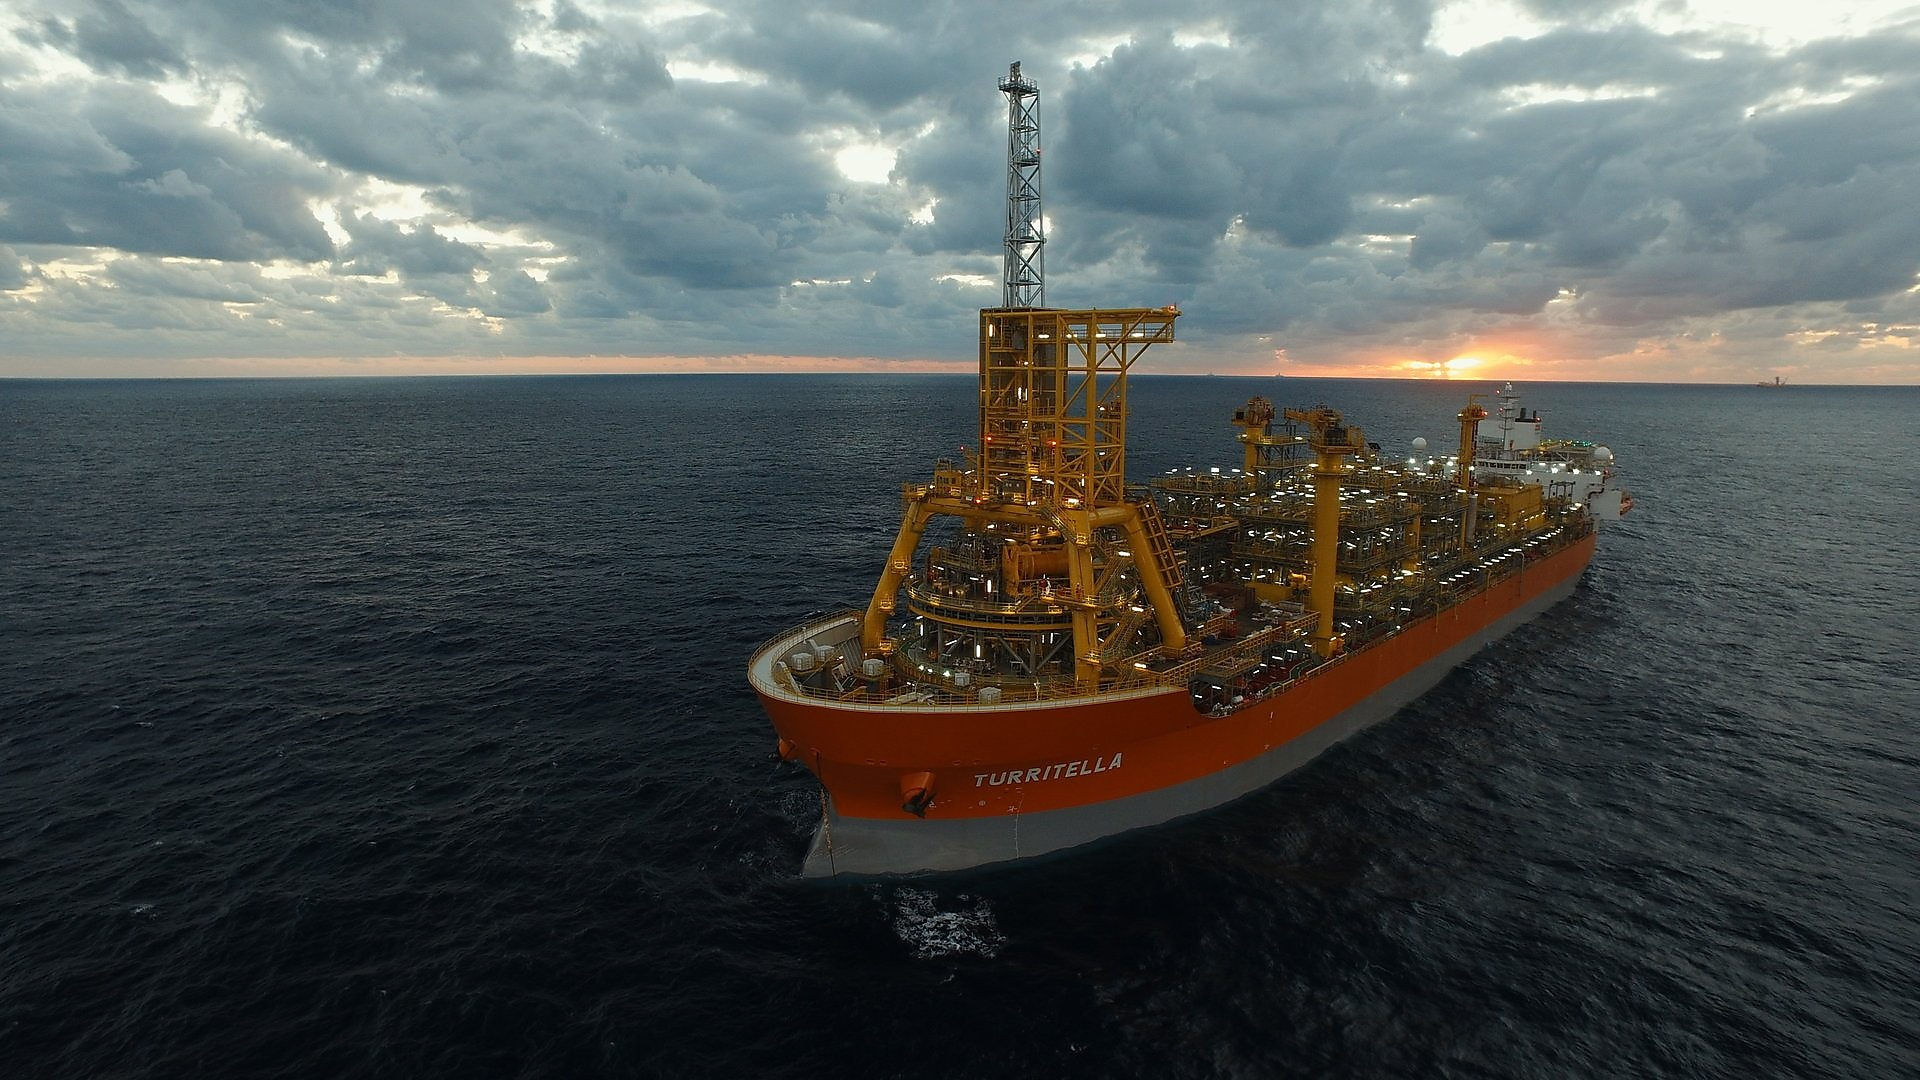 View of the floating production, storage and offloading vessel (FPSO) at sea.